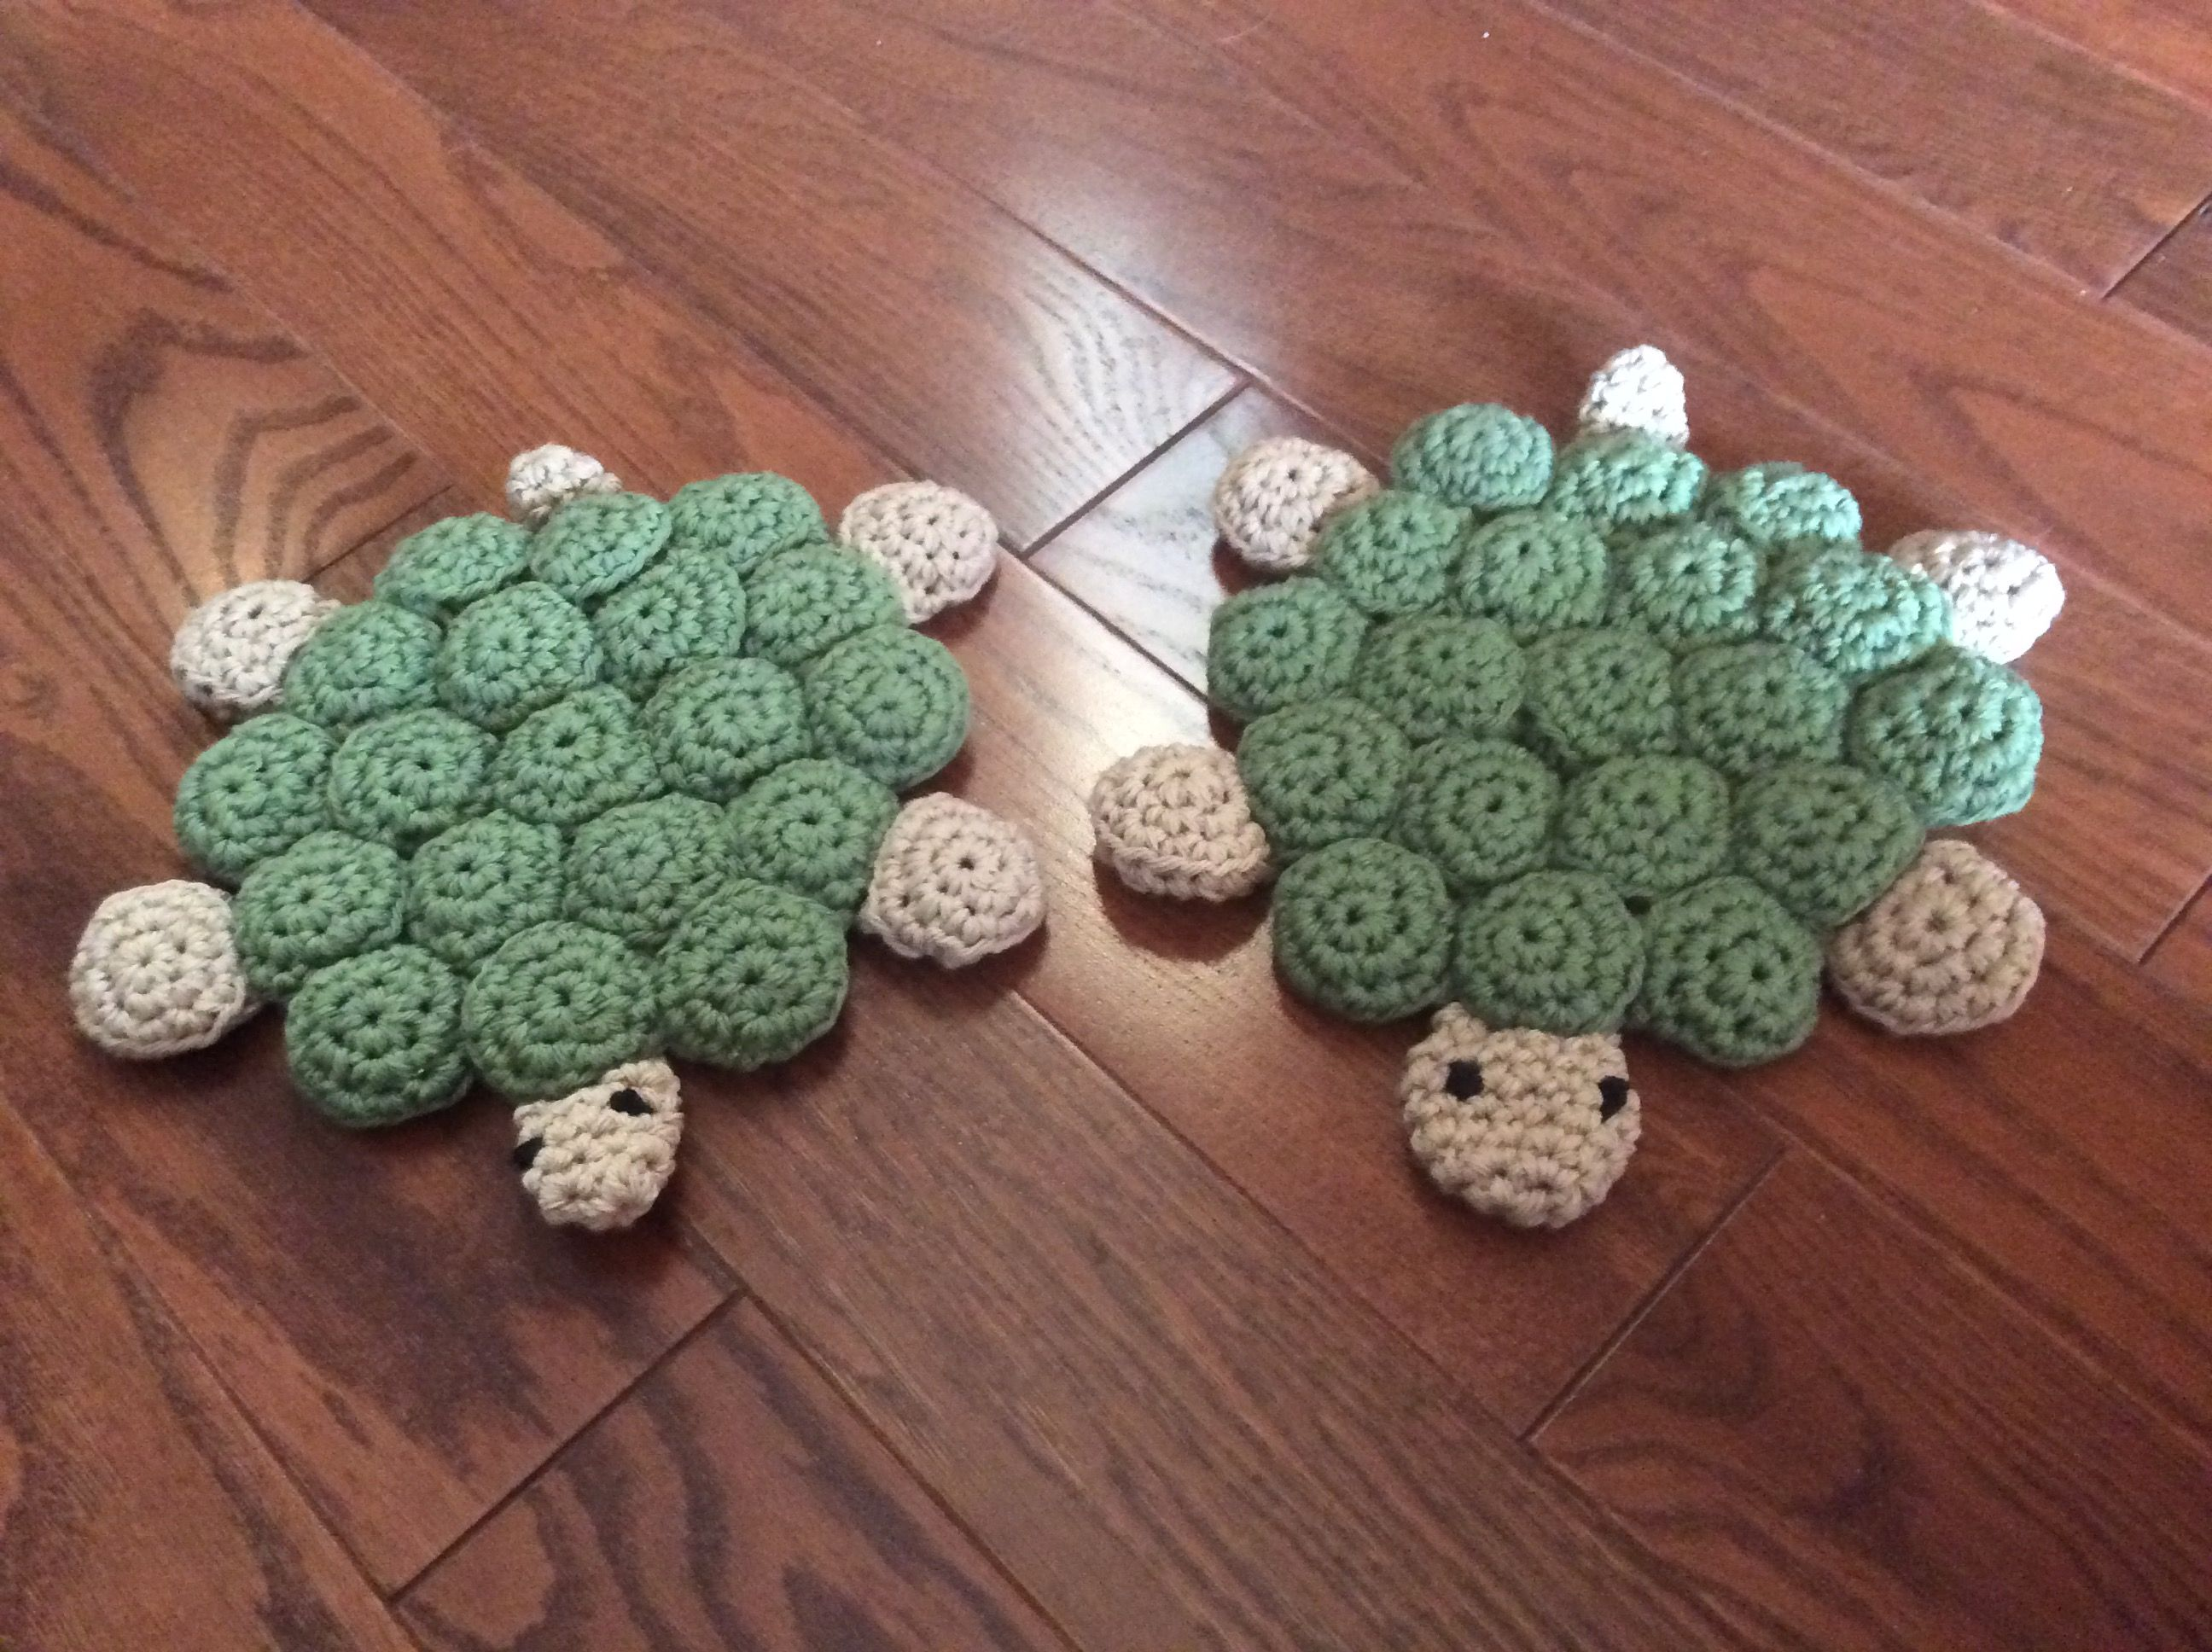 Turtle Metal Bottle Cap Trivet Made By Knitting By Pam And Donna